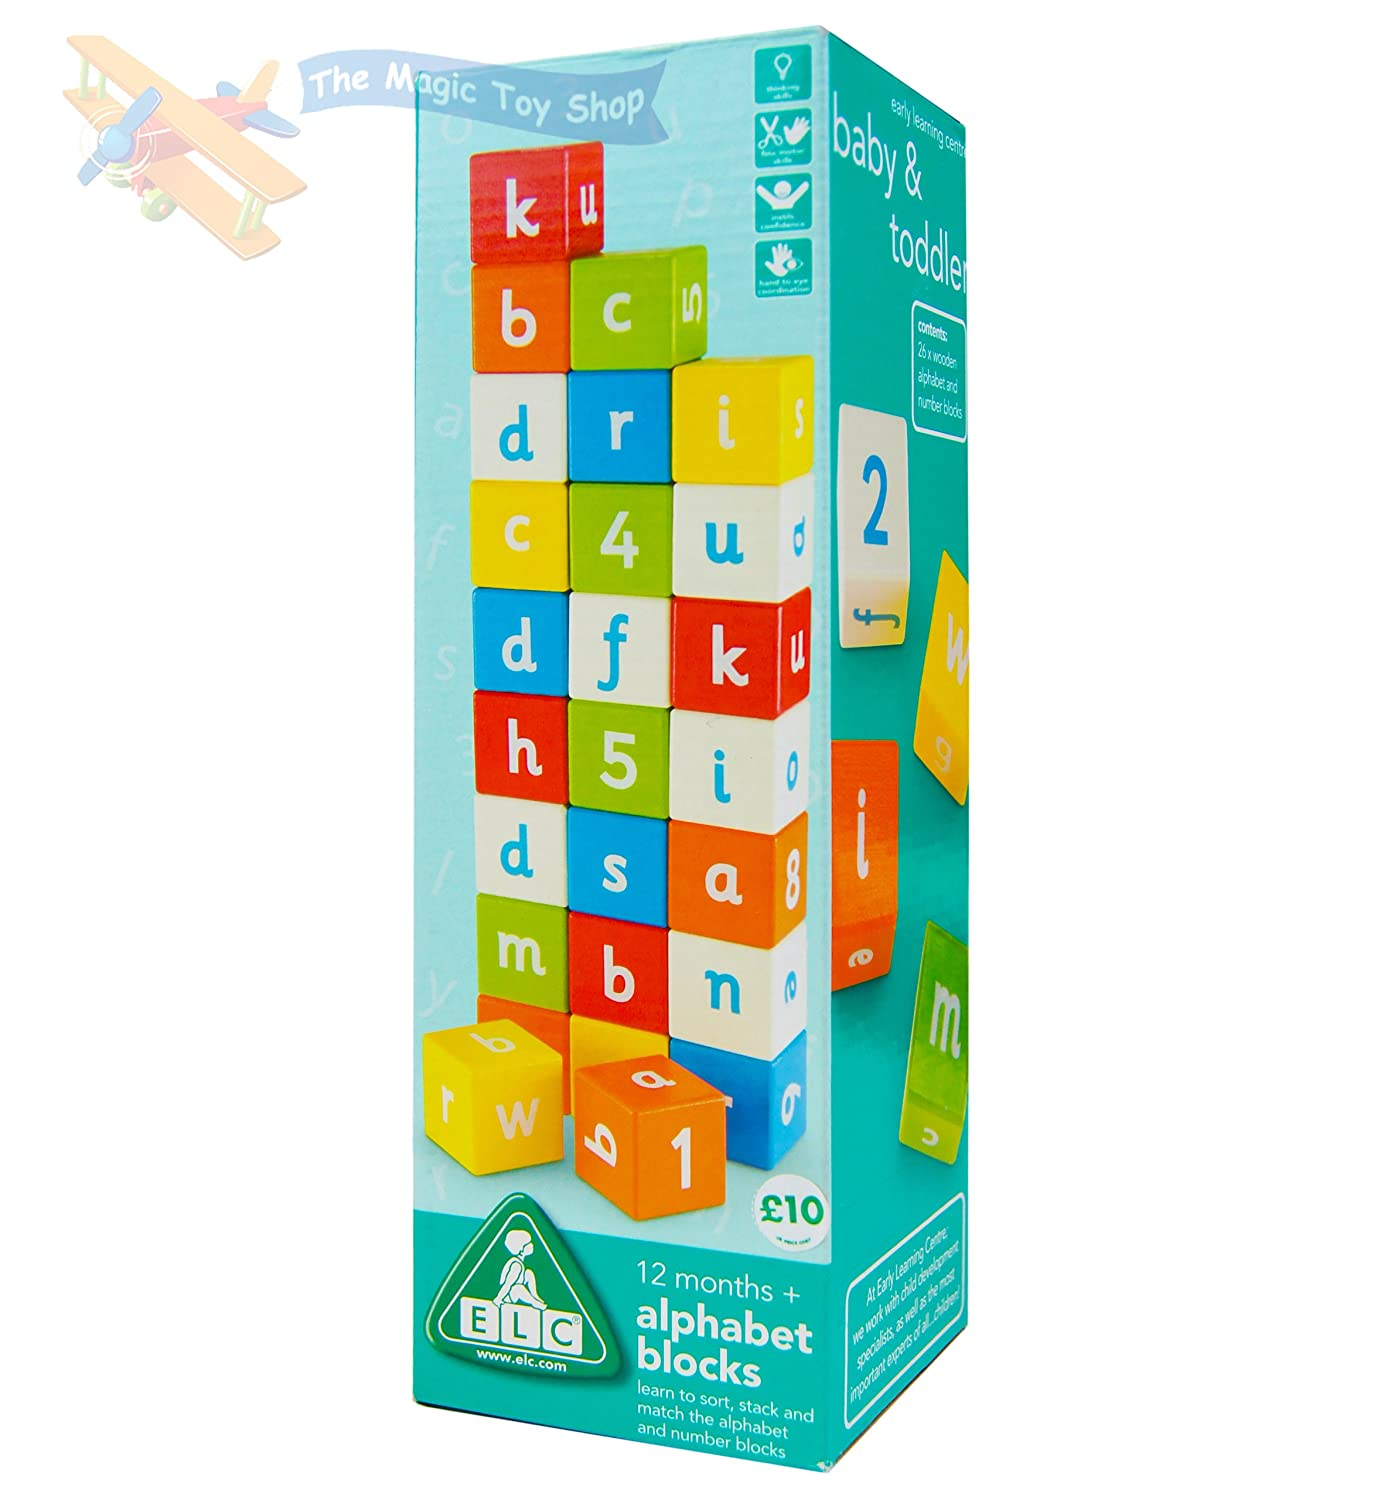 ELC WOODEN ALPHABET BLOCKS MULTI COLOURED LETTERS NUMBERS FOR AGES